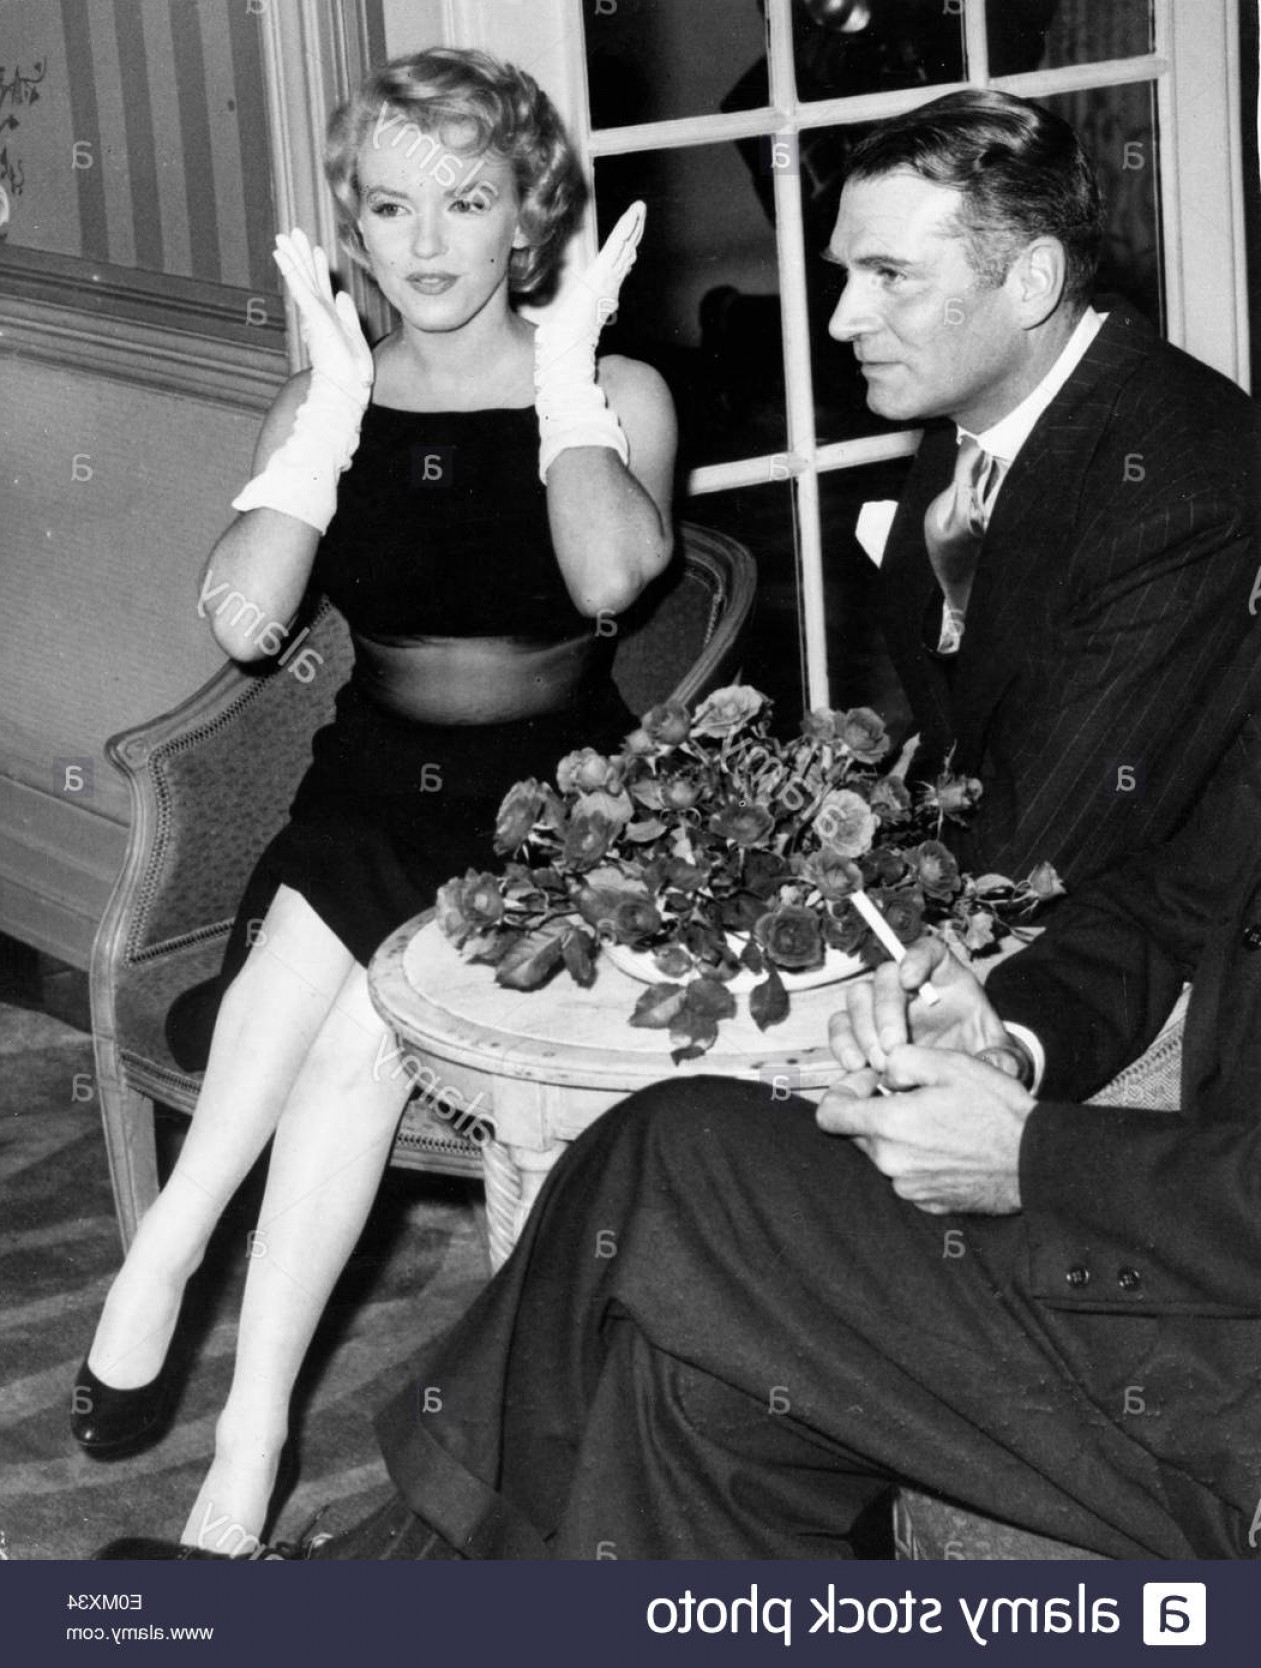 Marilyn Monroe Dress Vector: Stock Photo Starlet Marilyn Monroe And Sir Laurence Olivier At A Press Conference